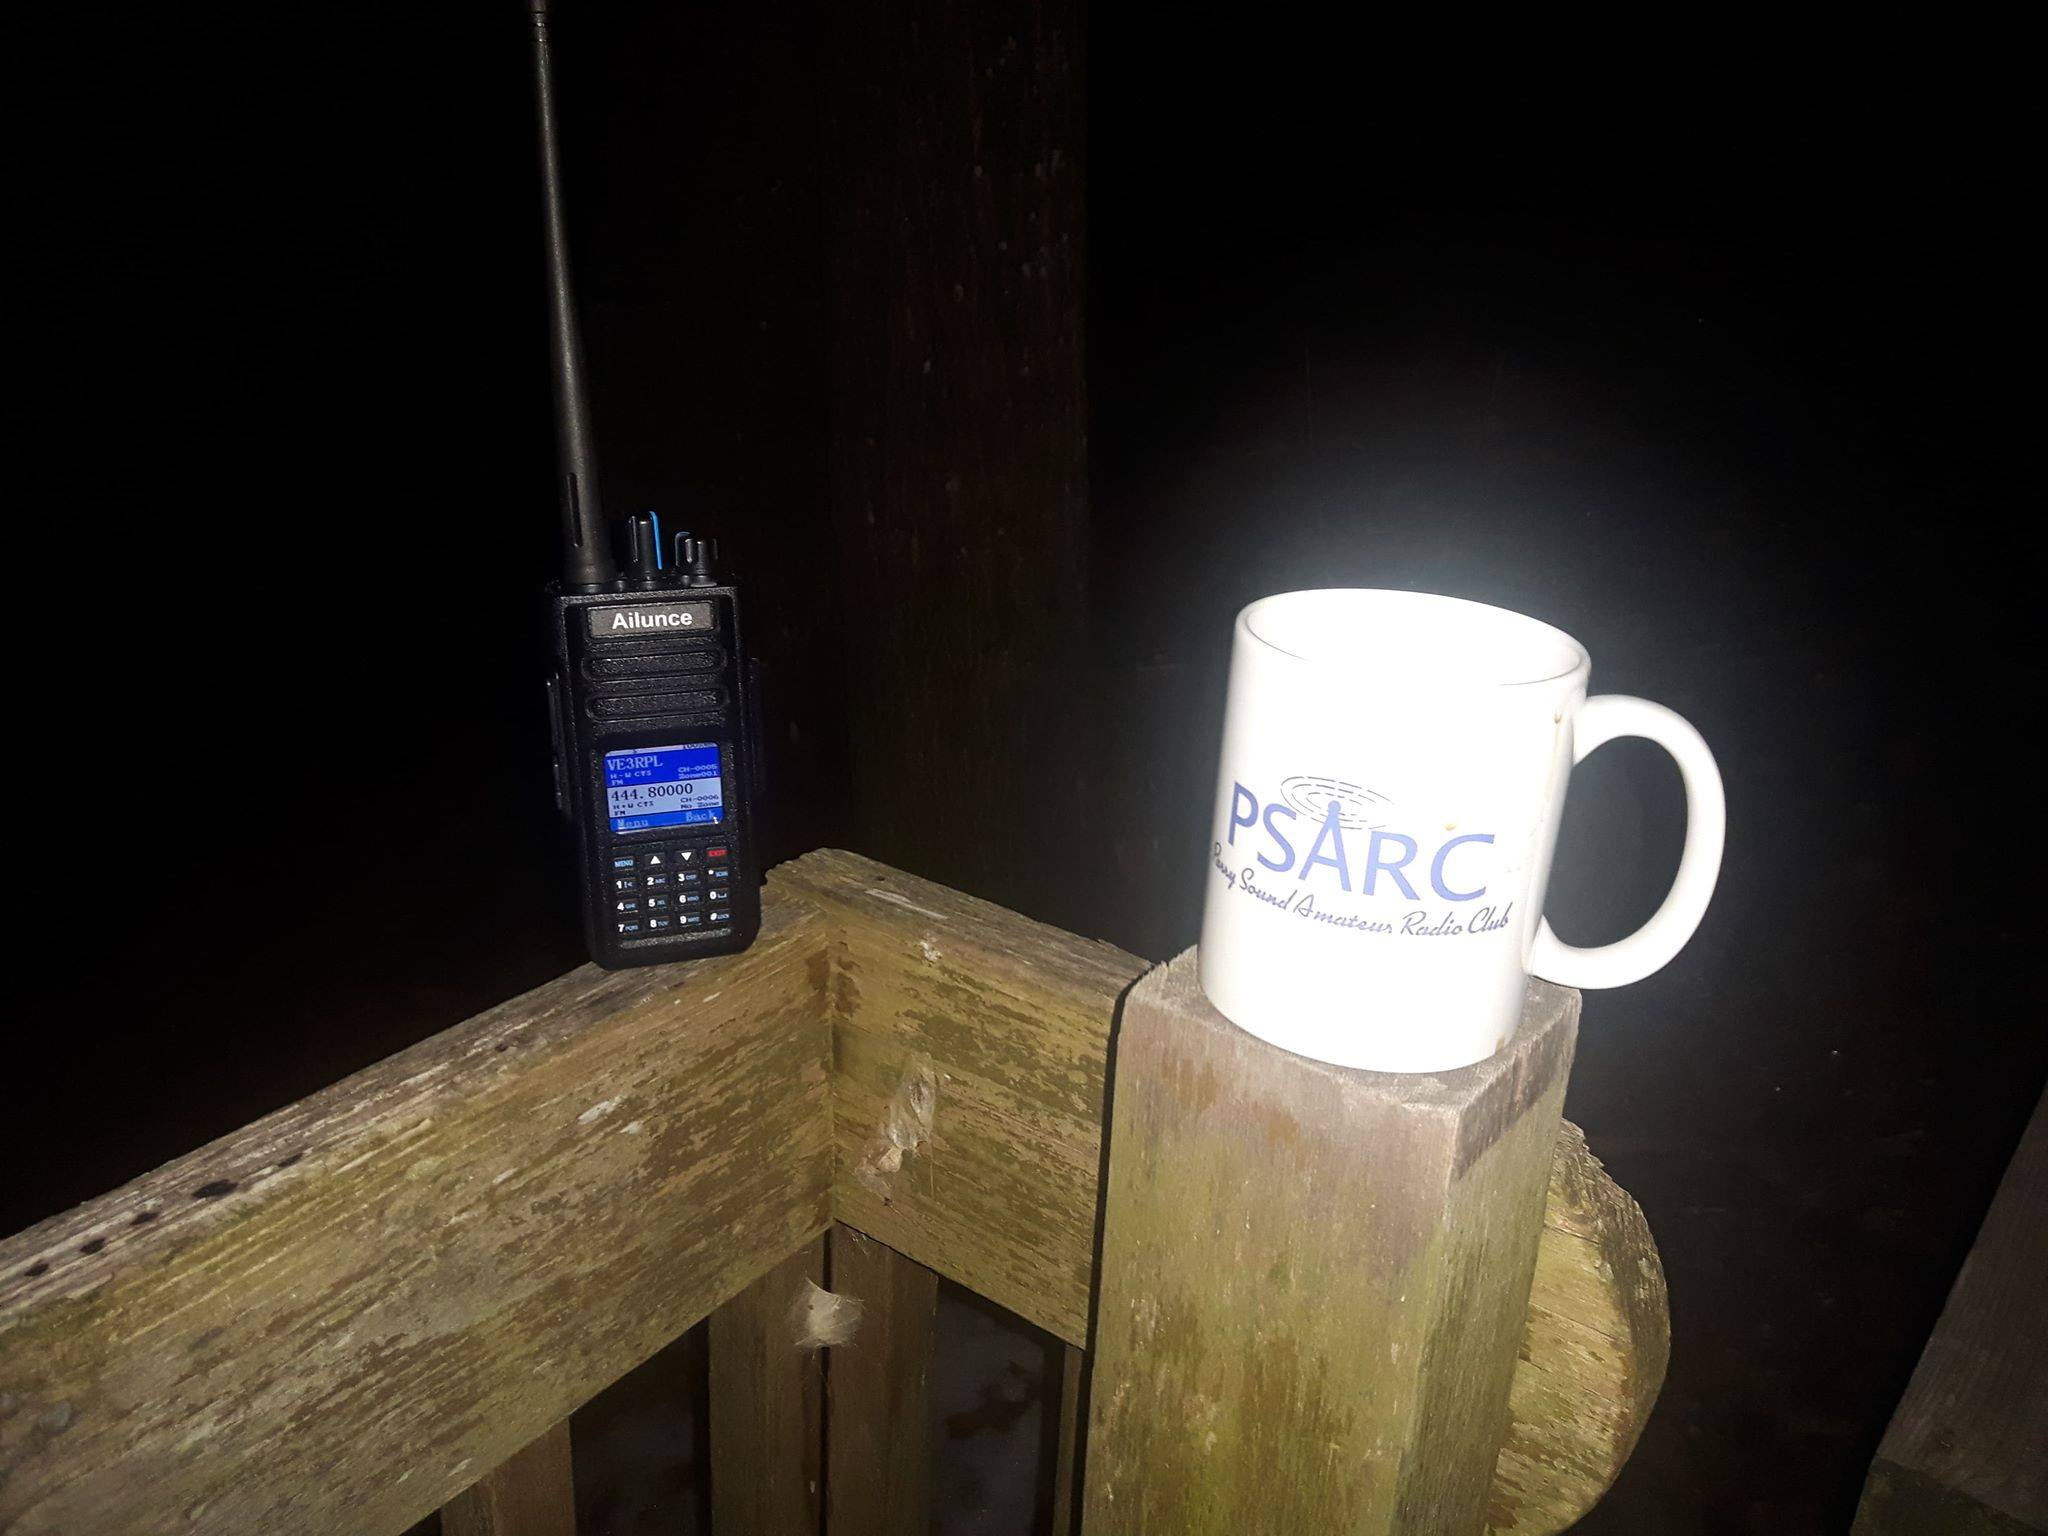 It will be a wonderful thing to operate the ham radio at night with a cup of coffee. #PSARC #Hamfest in 2019, will you come?